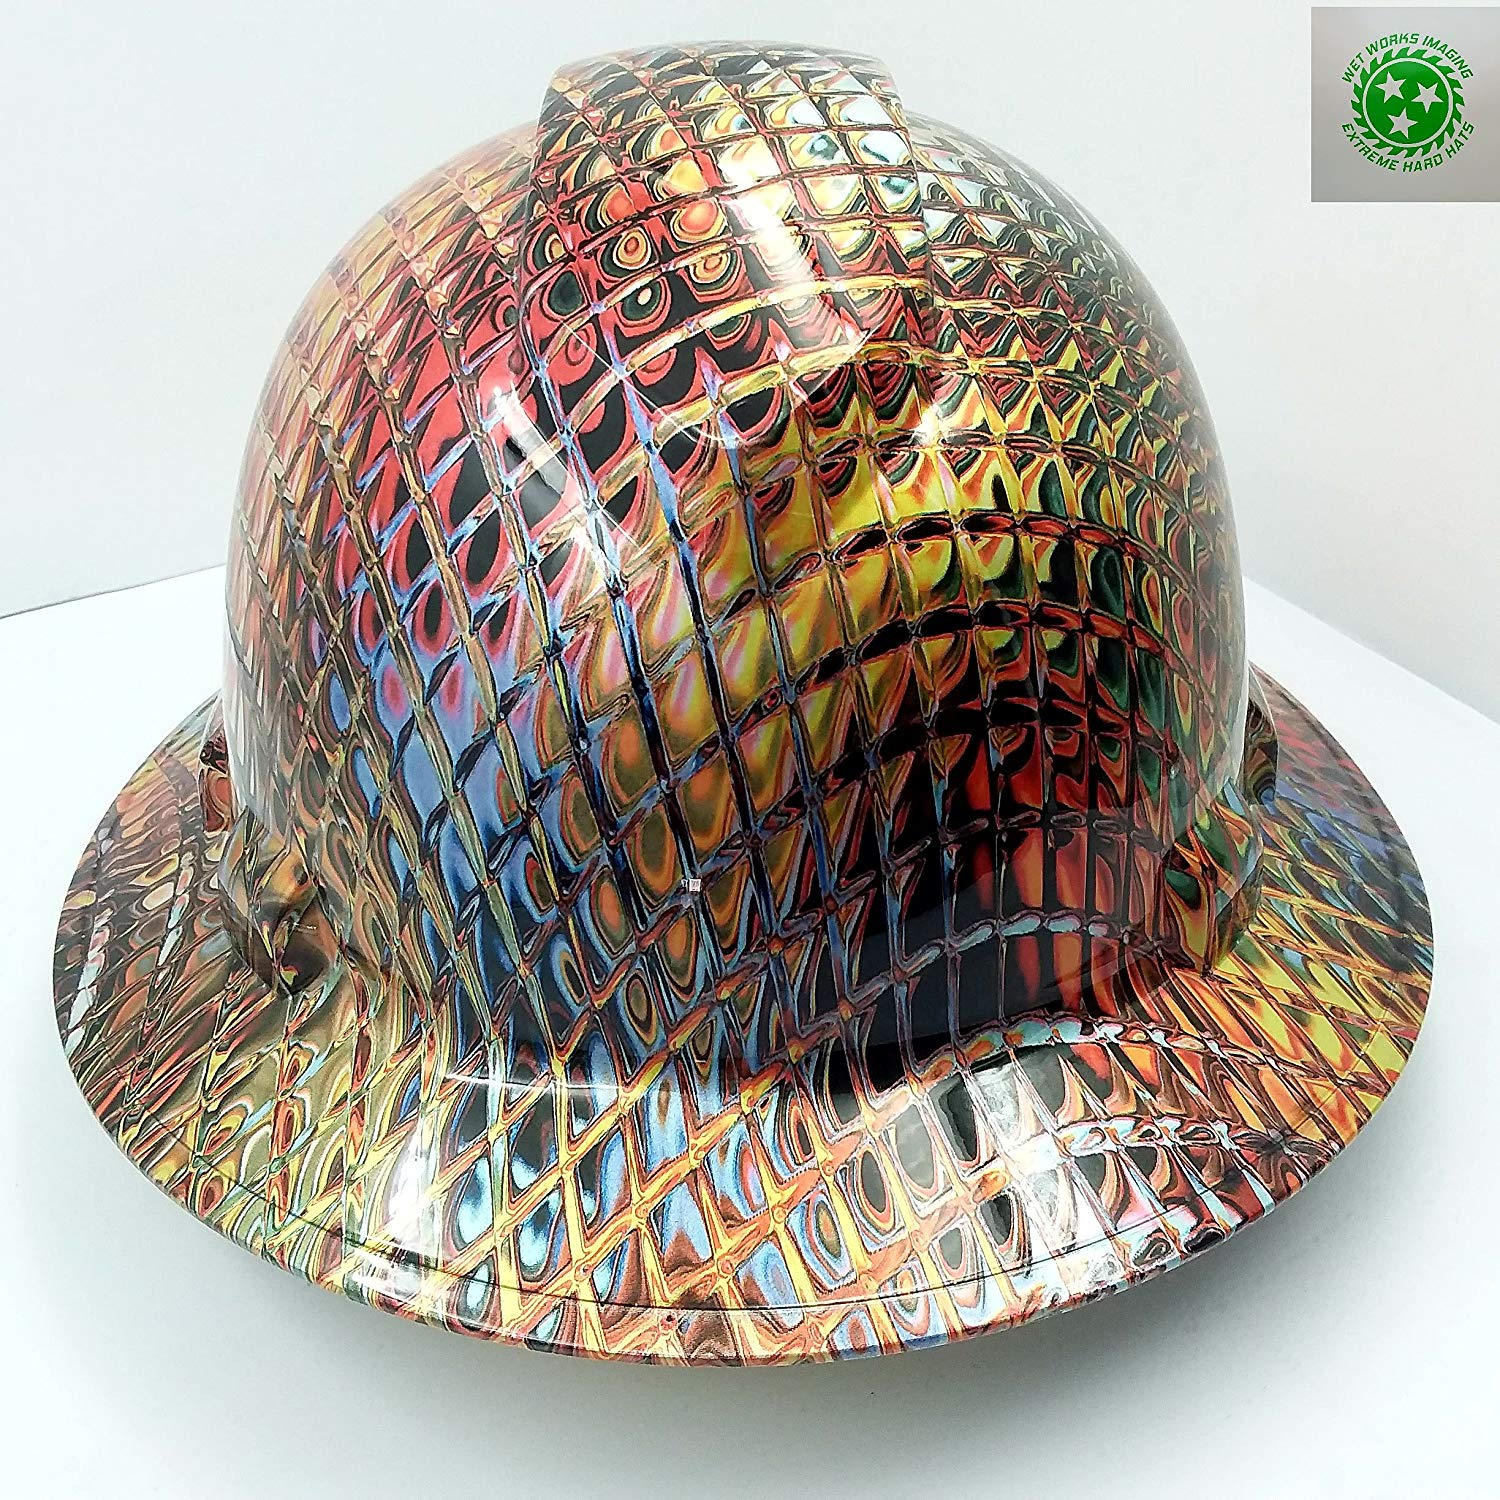 IRON MAN METALLIC SWIRL HARD HAT